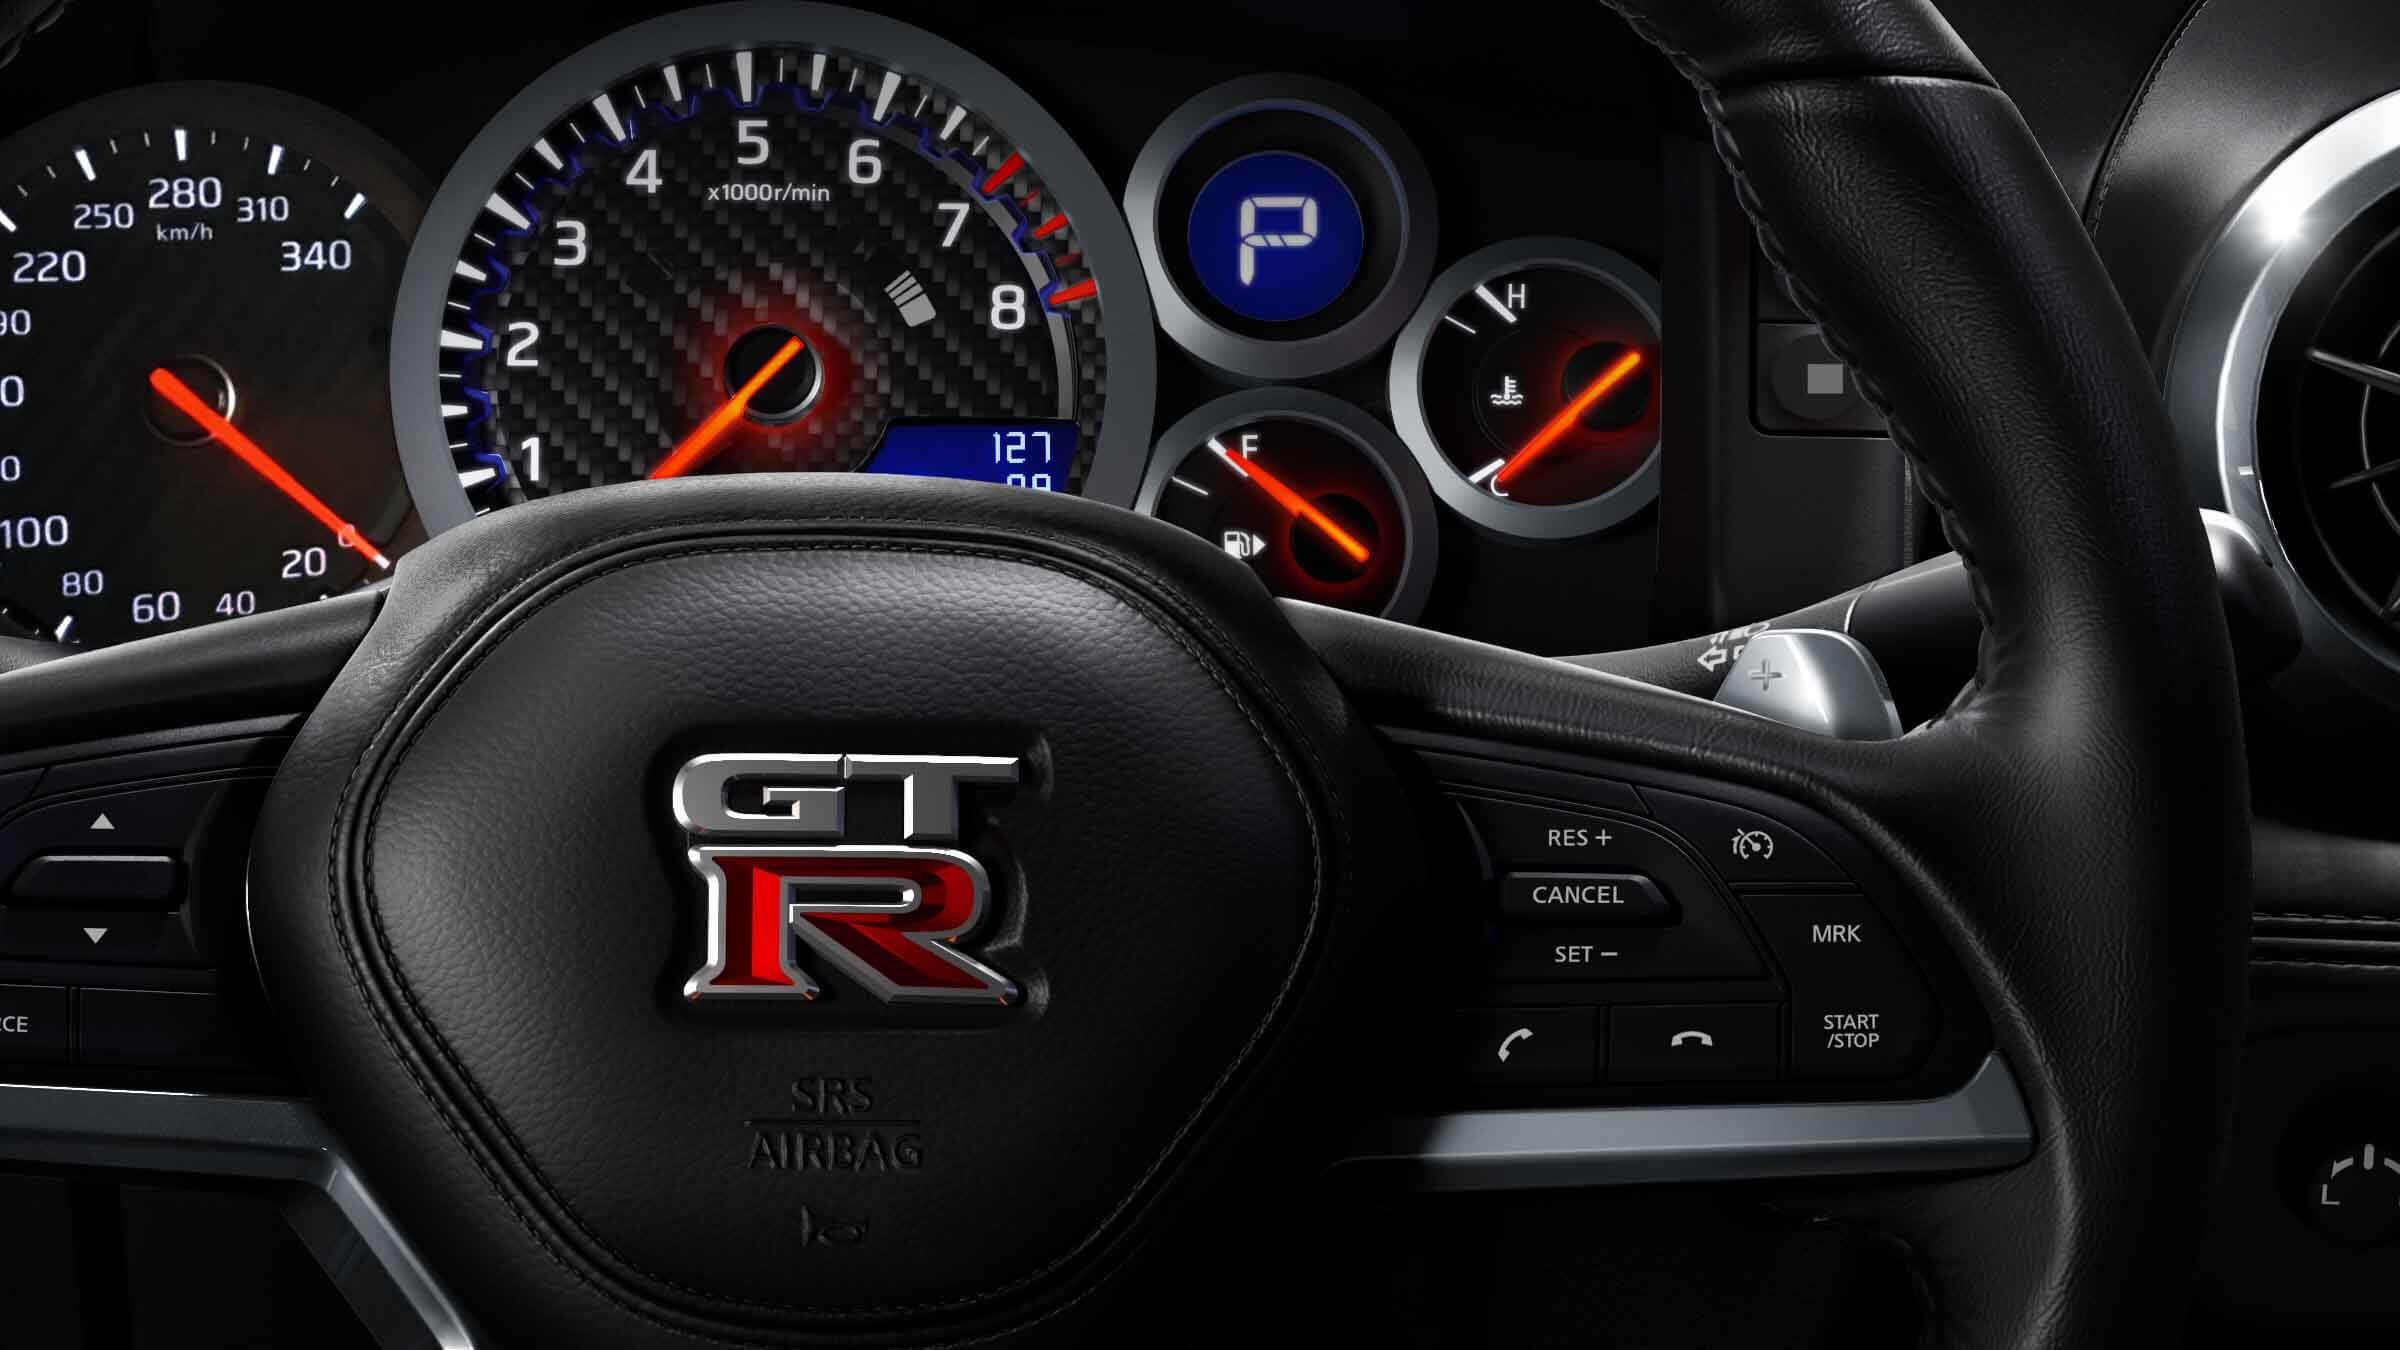 GT-R Steering Wheel and Gauges Image